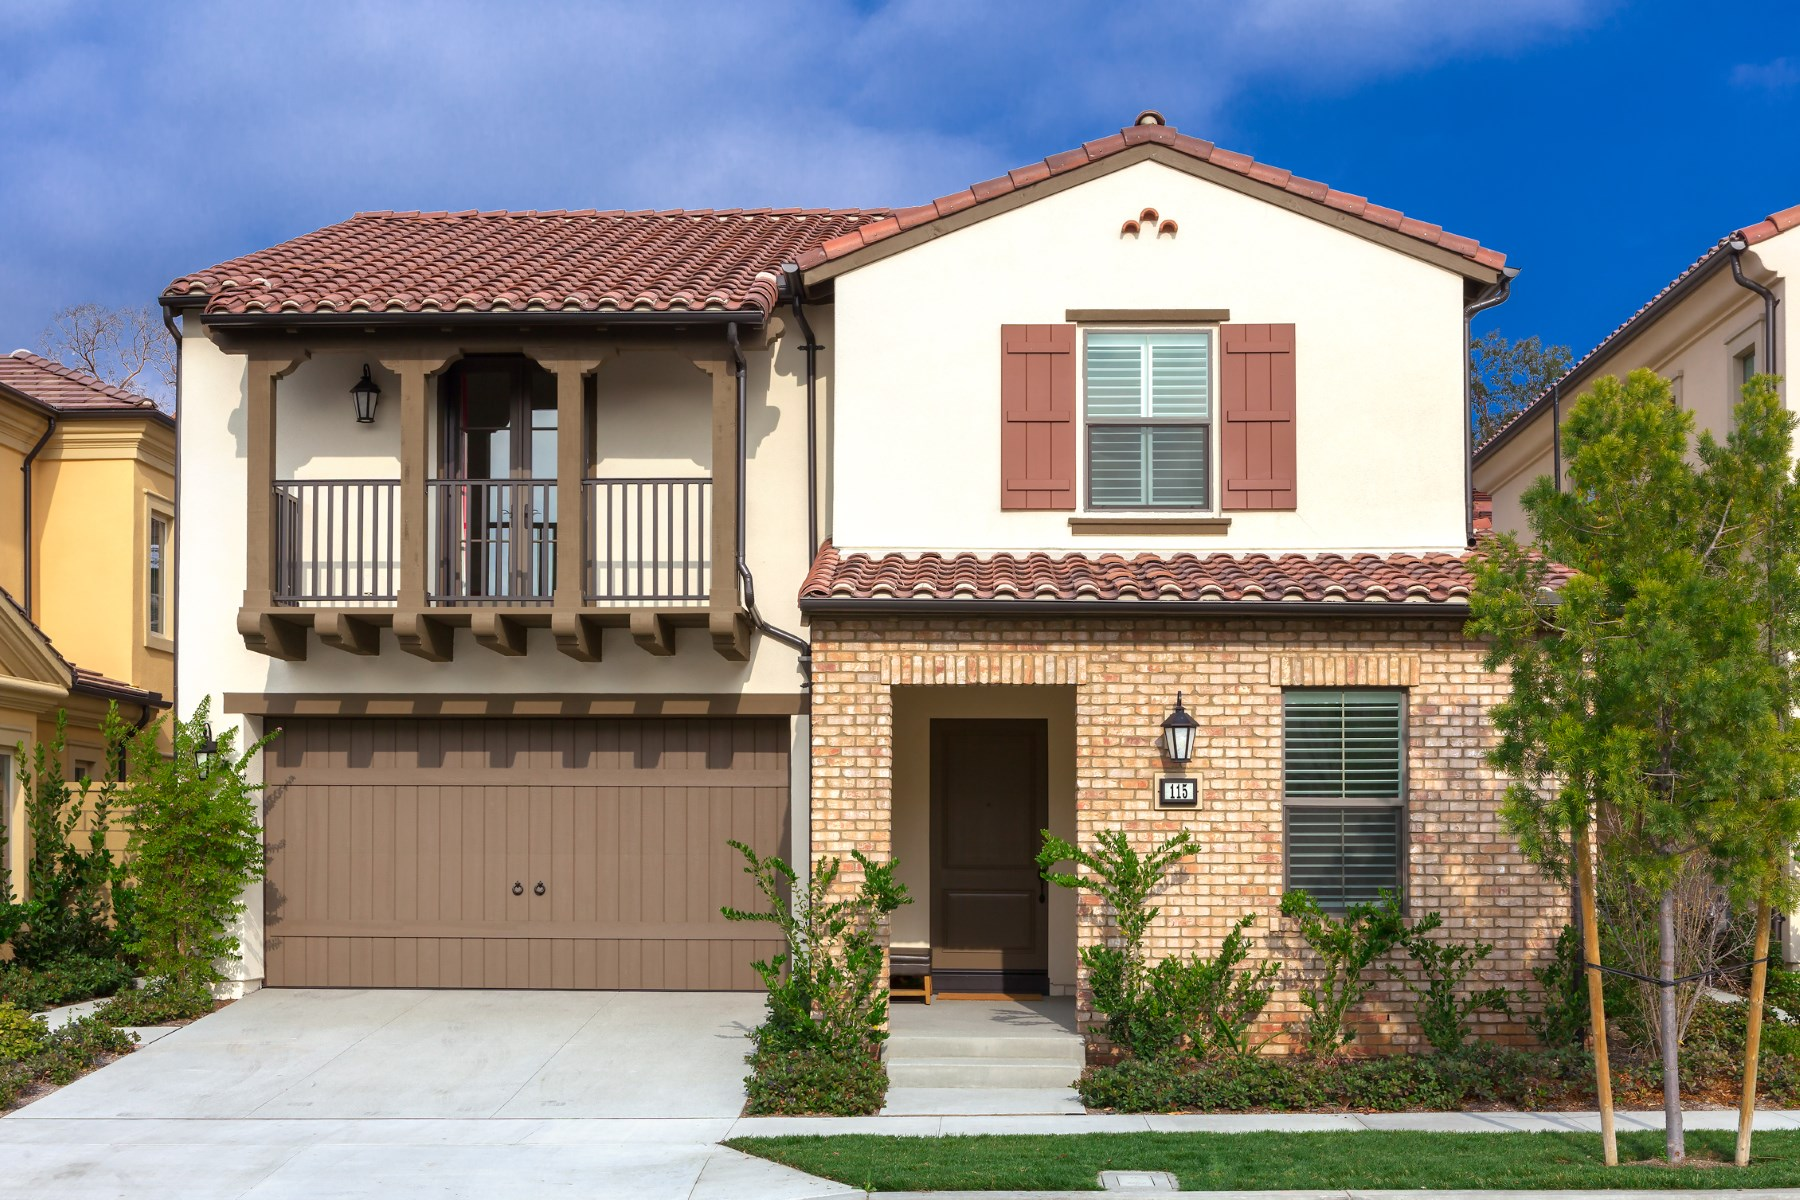 Property For Sale at Irvine Cypress Village Beauty